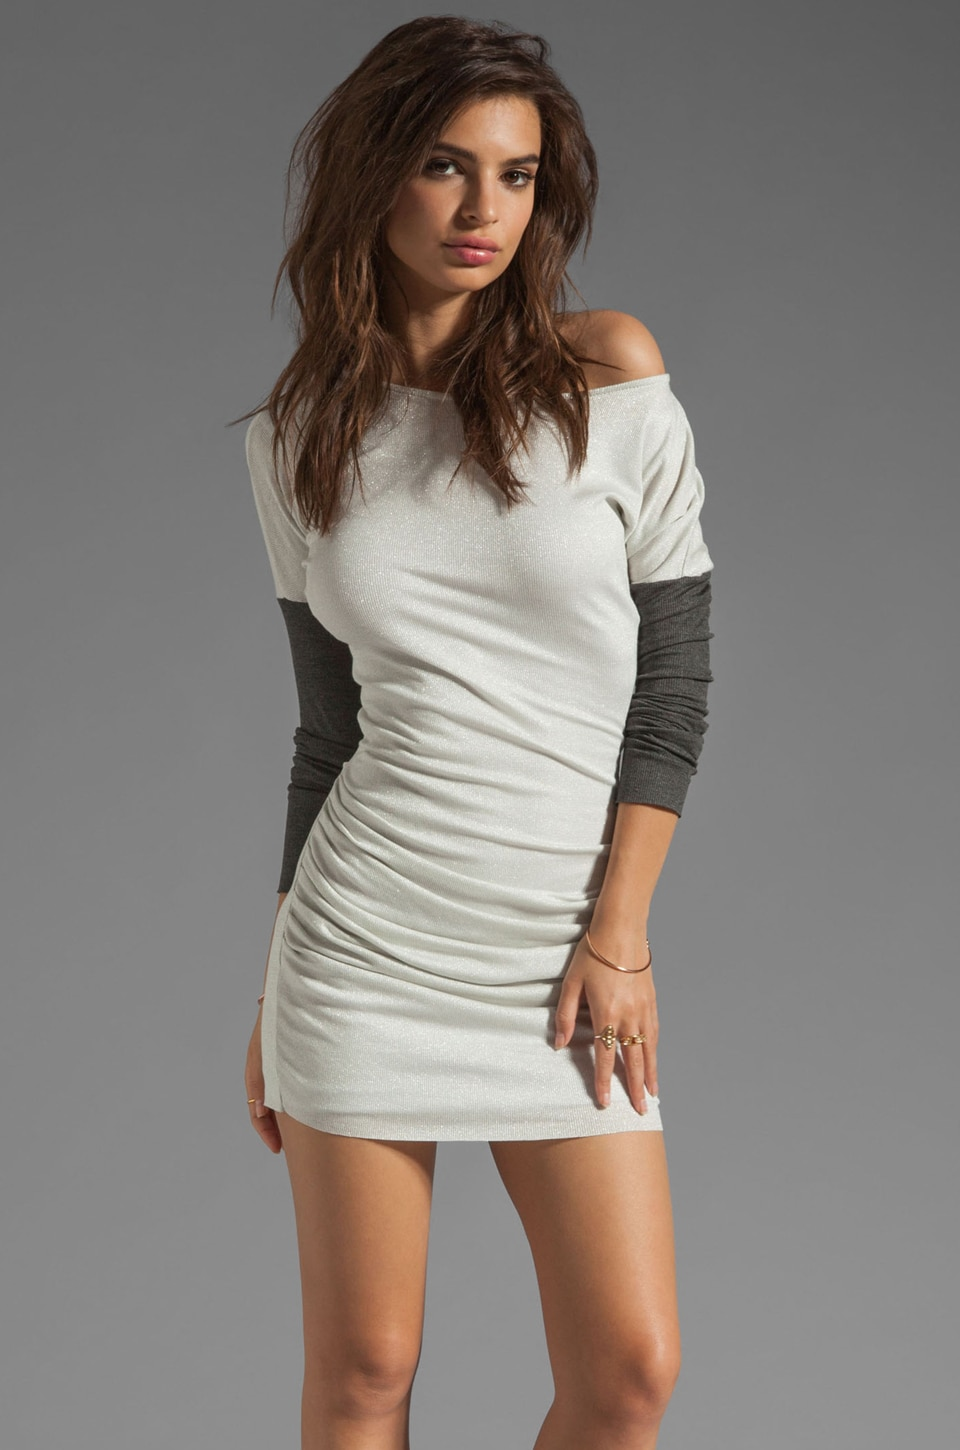 dolan Lurex Rib Shirred Dress in Star